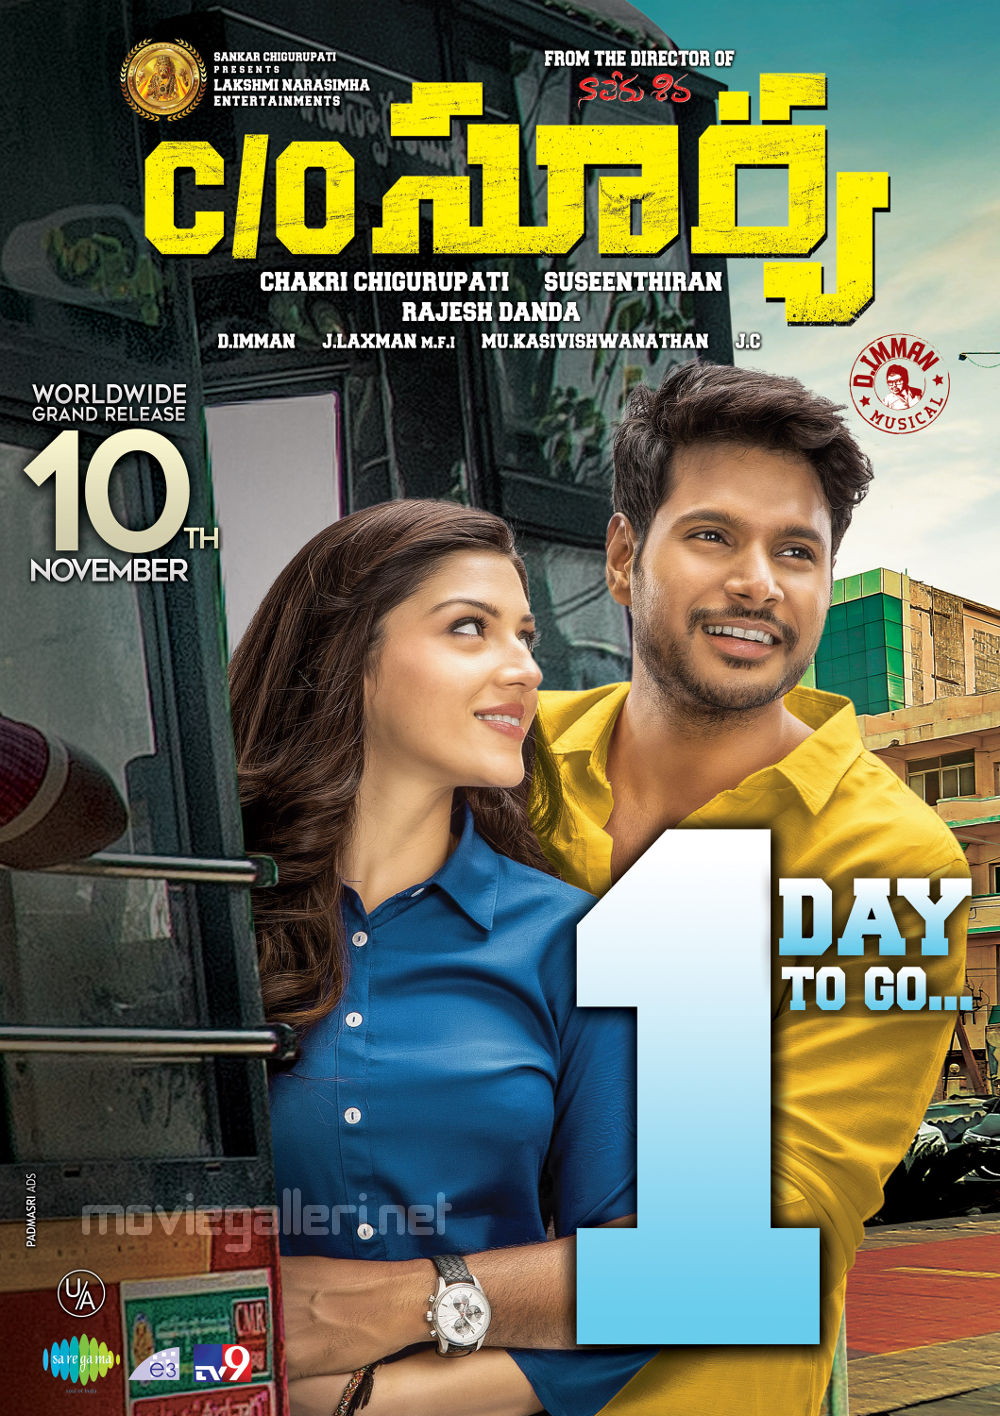 Mehreen Pirzada Sundeep Kishan CO Surya 1 Day to Go Posters